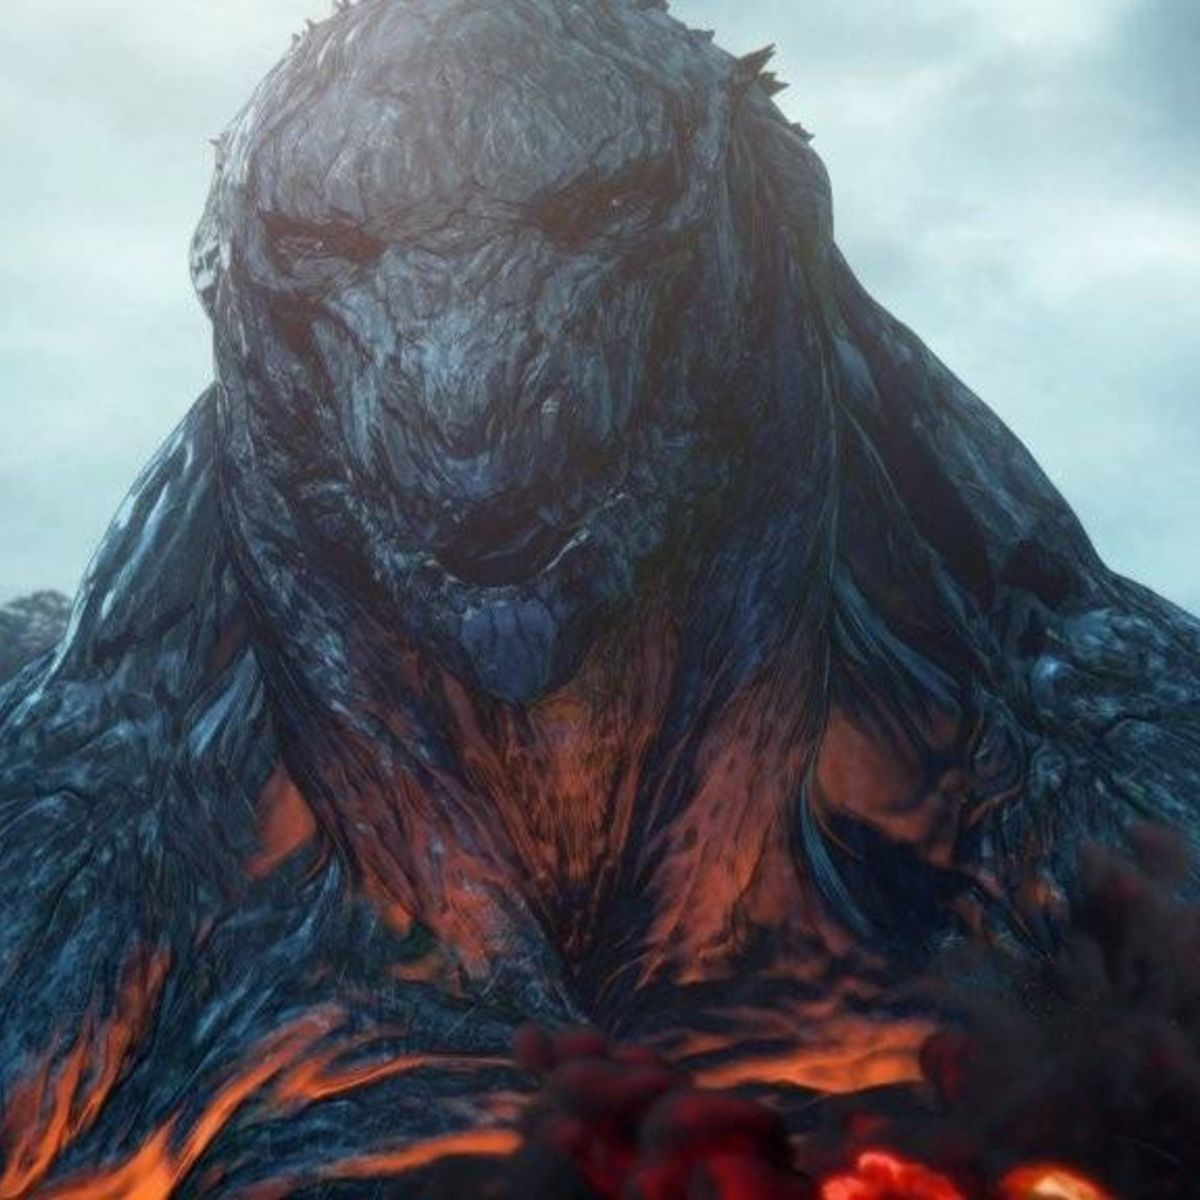 godzilla planet of monsters review netflix anime has easter eggs